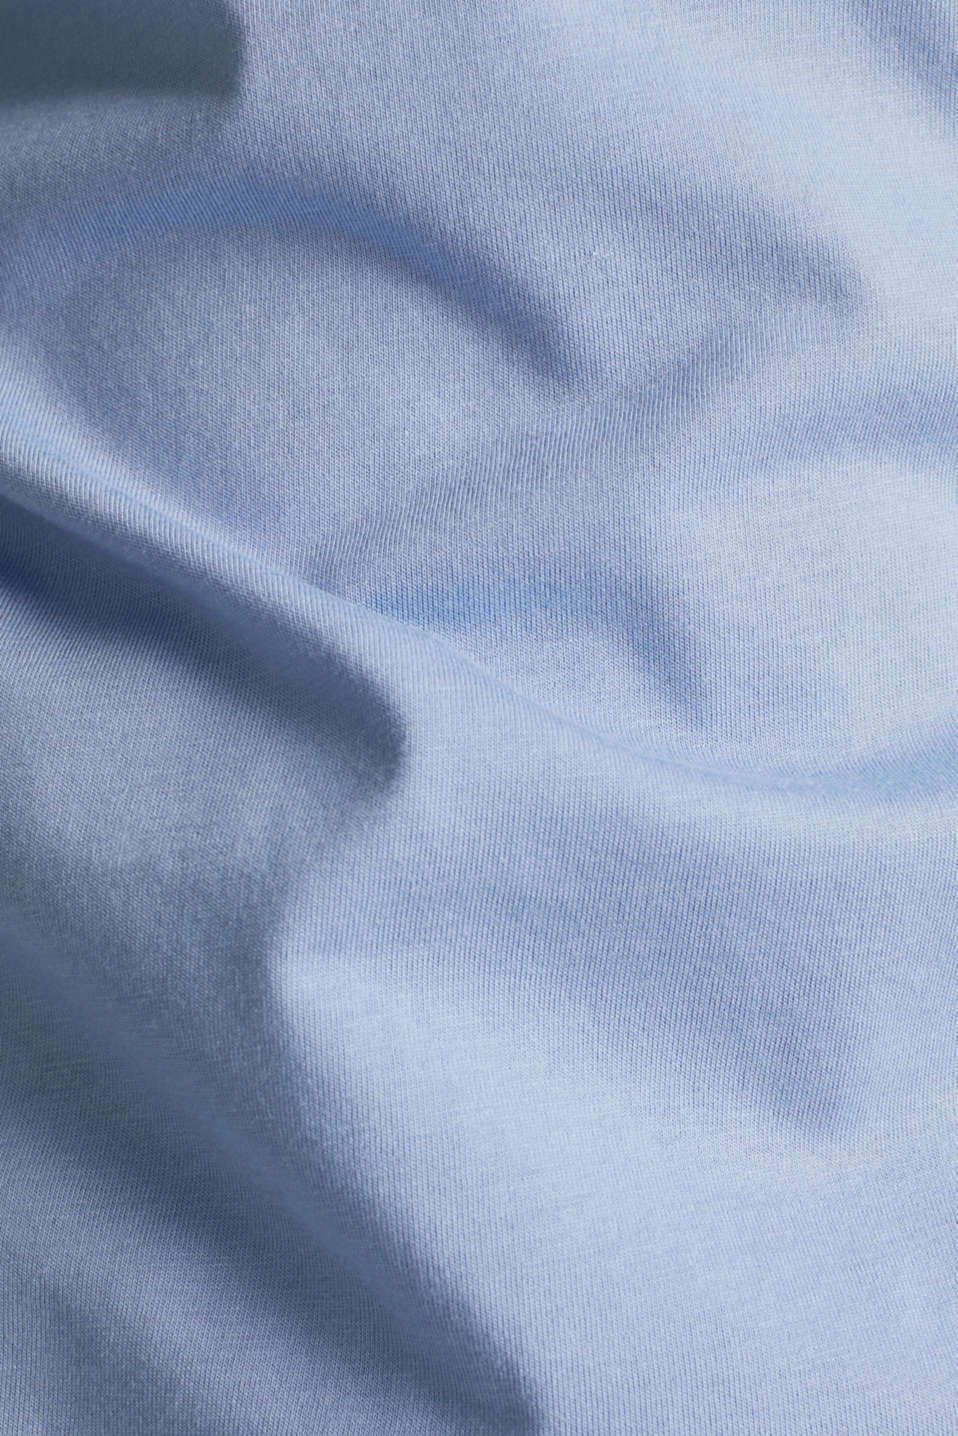 T-shirt with turn-up sleeves, BLUE LAVENDER, detail image number 4